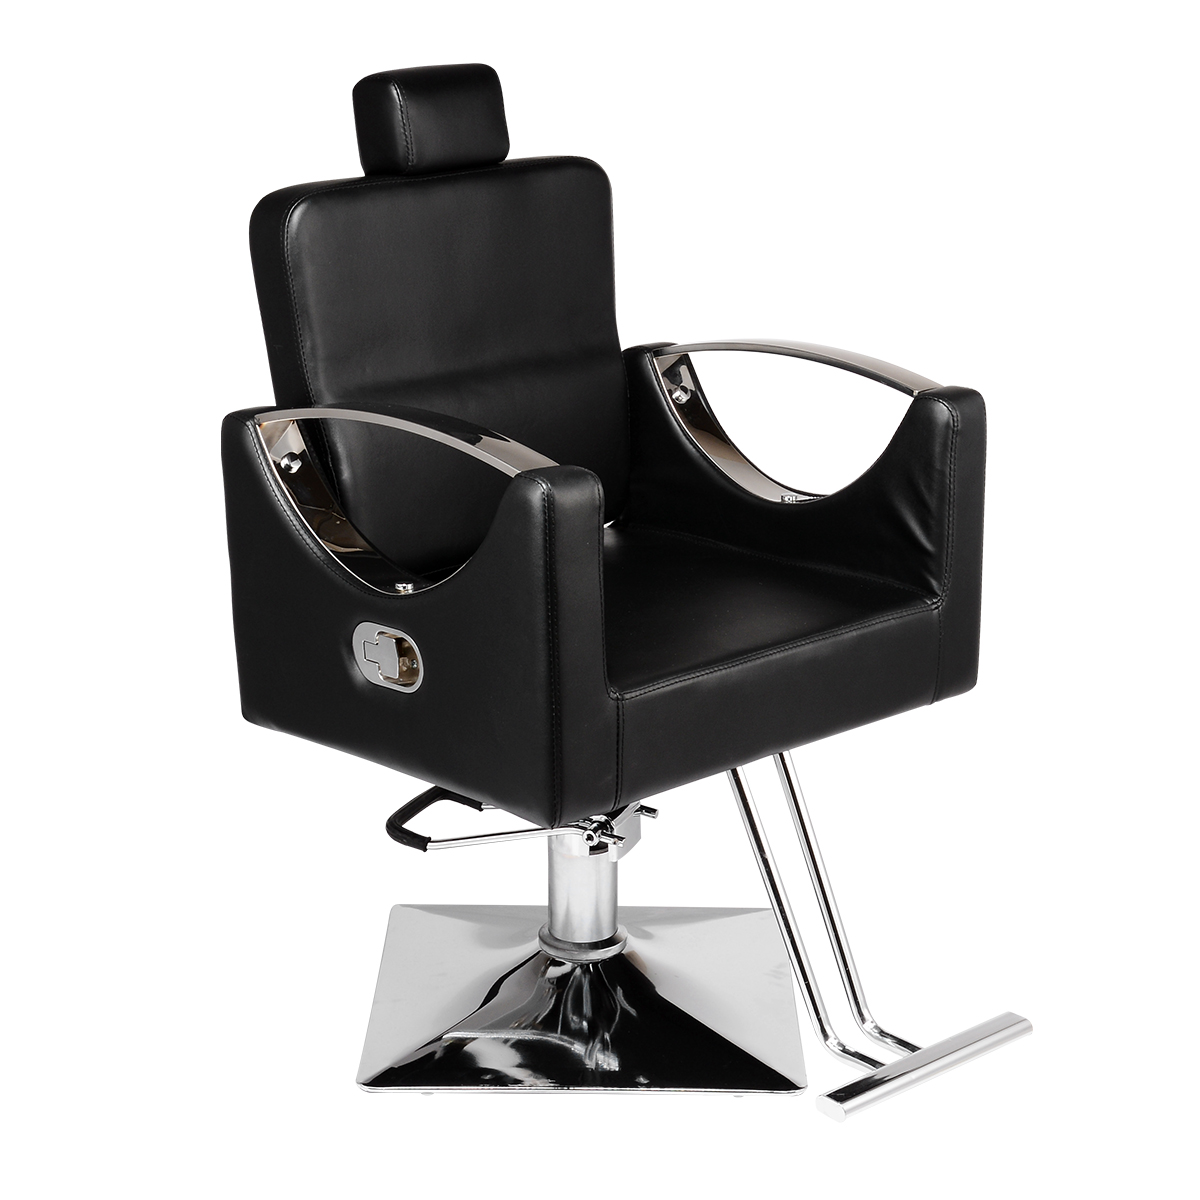 Barber Chair High Quality PU Leather Adjustable Hydraulic Reclining Barber Hairdressing Chair Beauty Salon Barbershop Chair